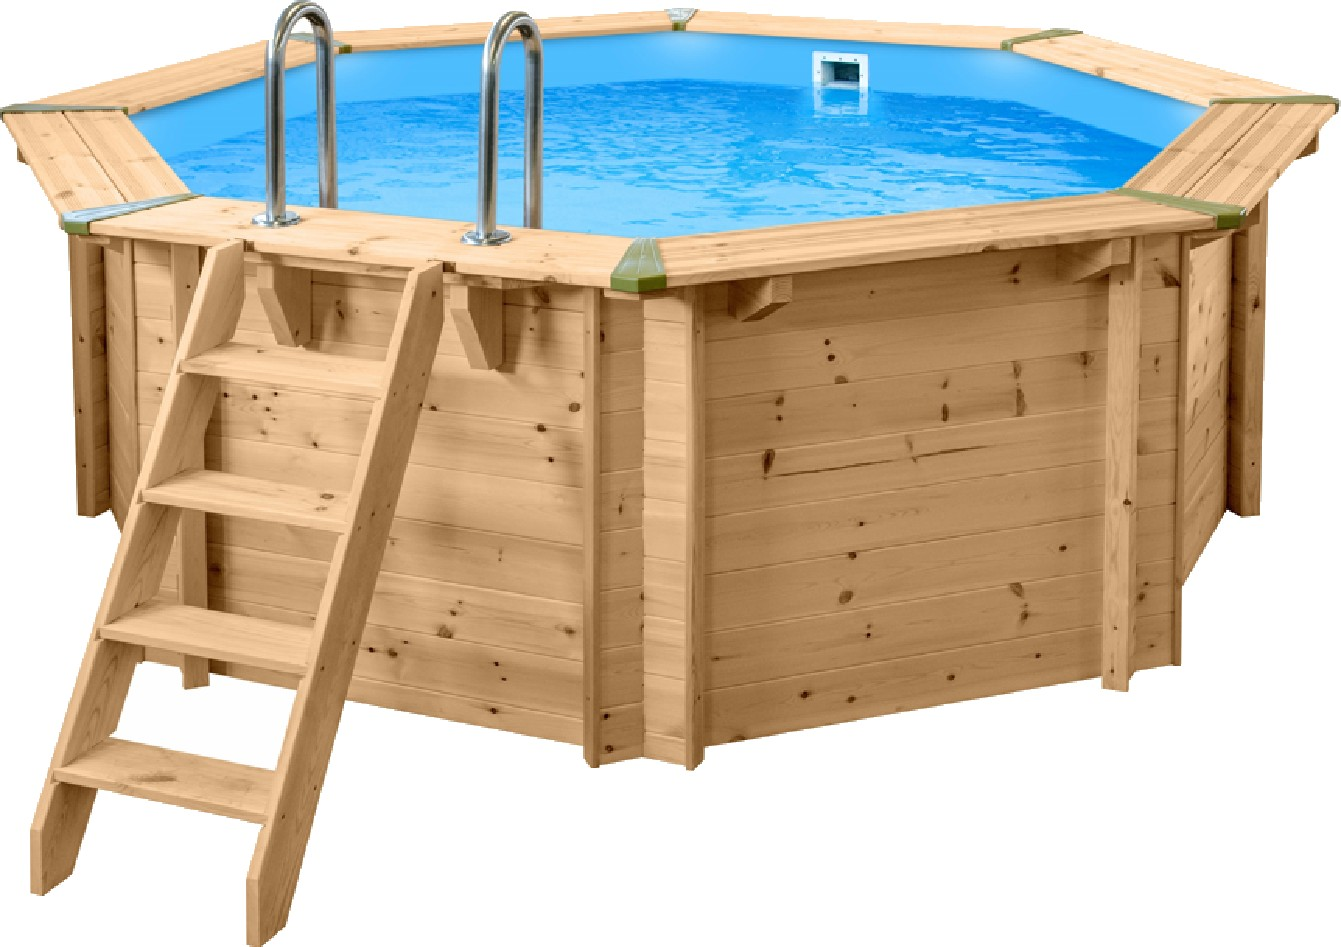 Pool Rund Steinoptik Holzpool Set Evolution Rund 440 X 116 Cm